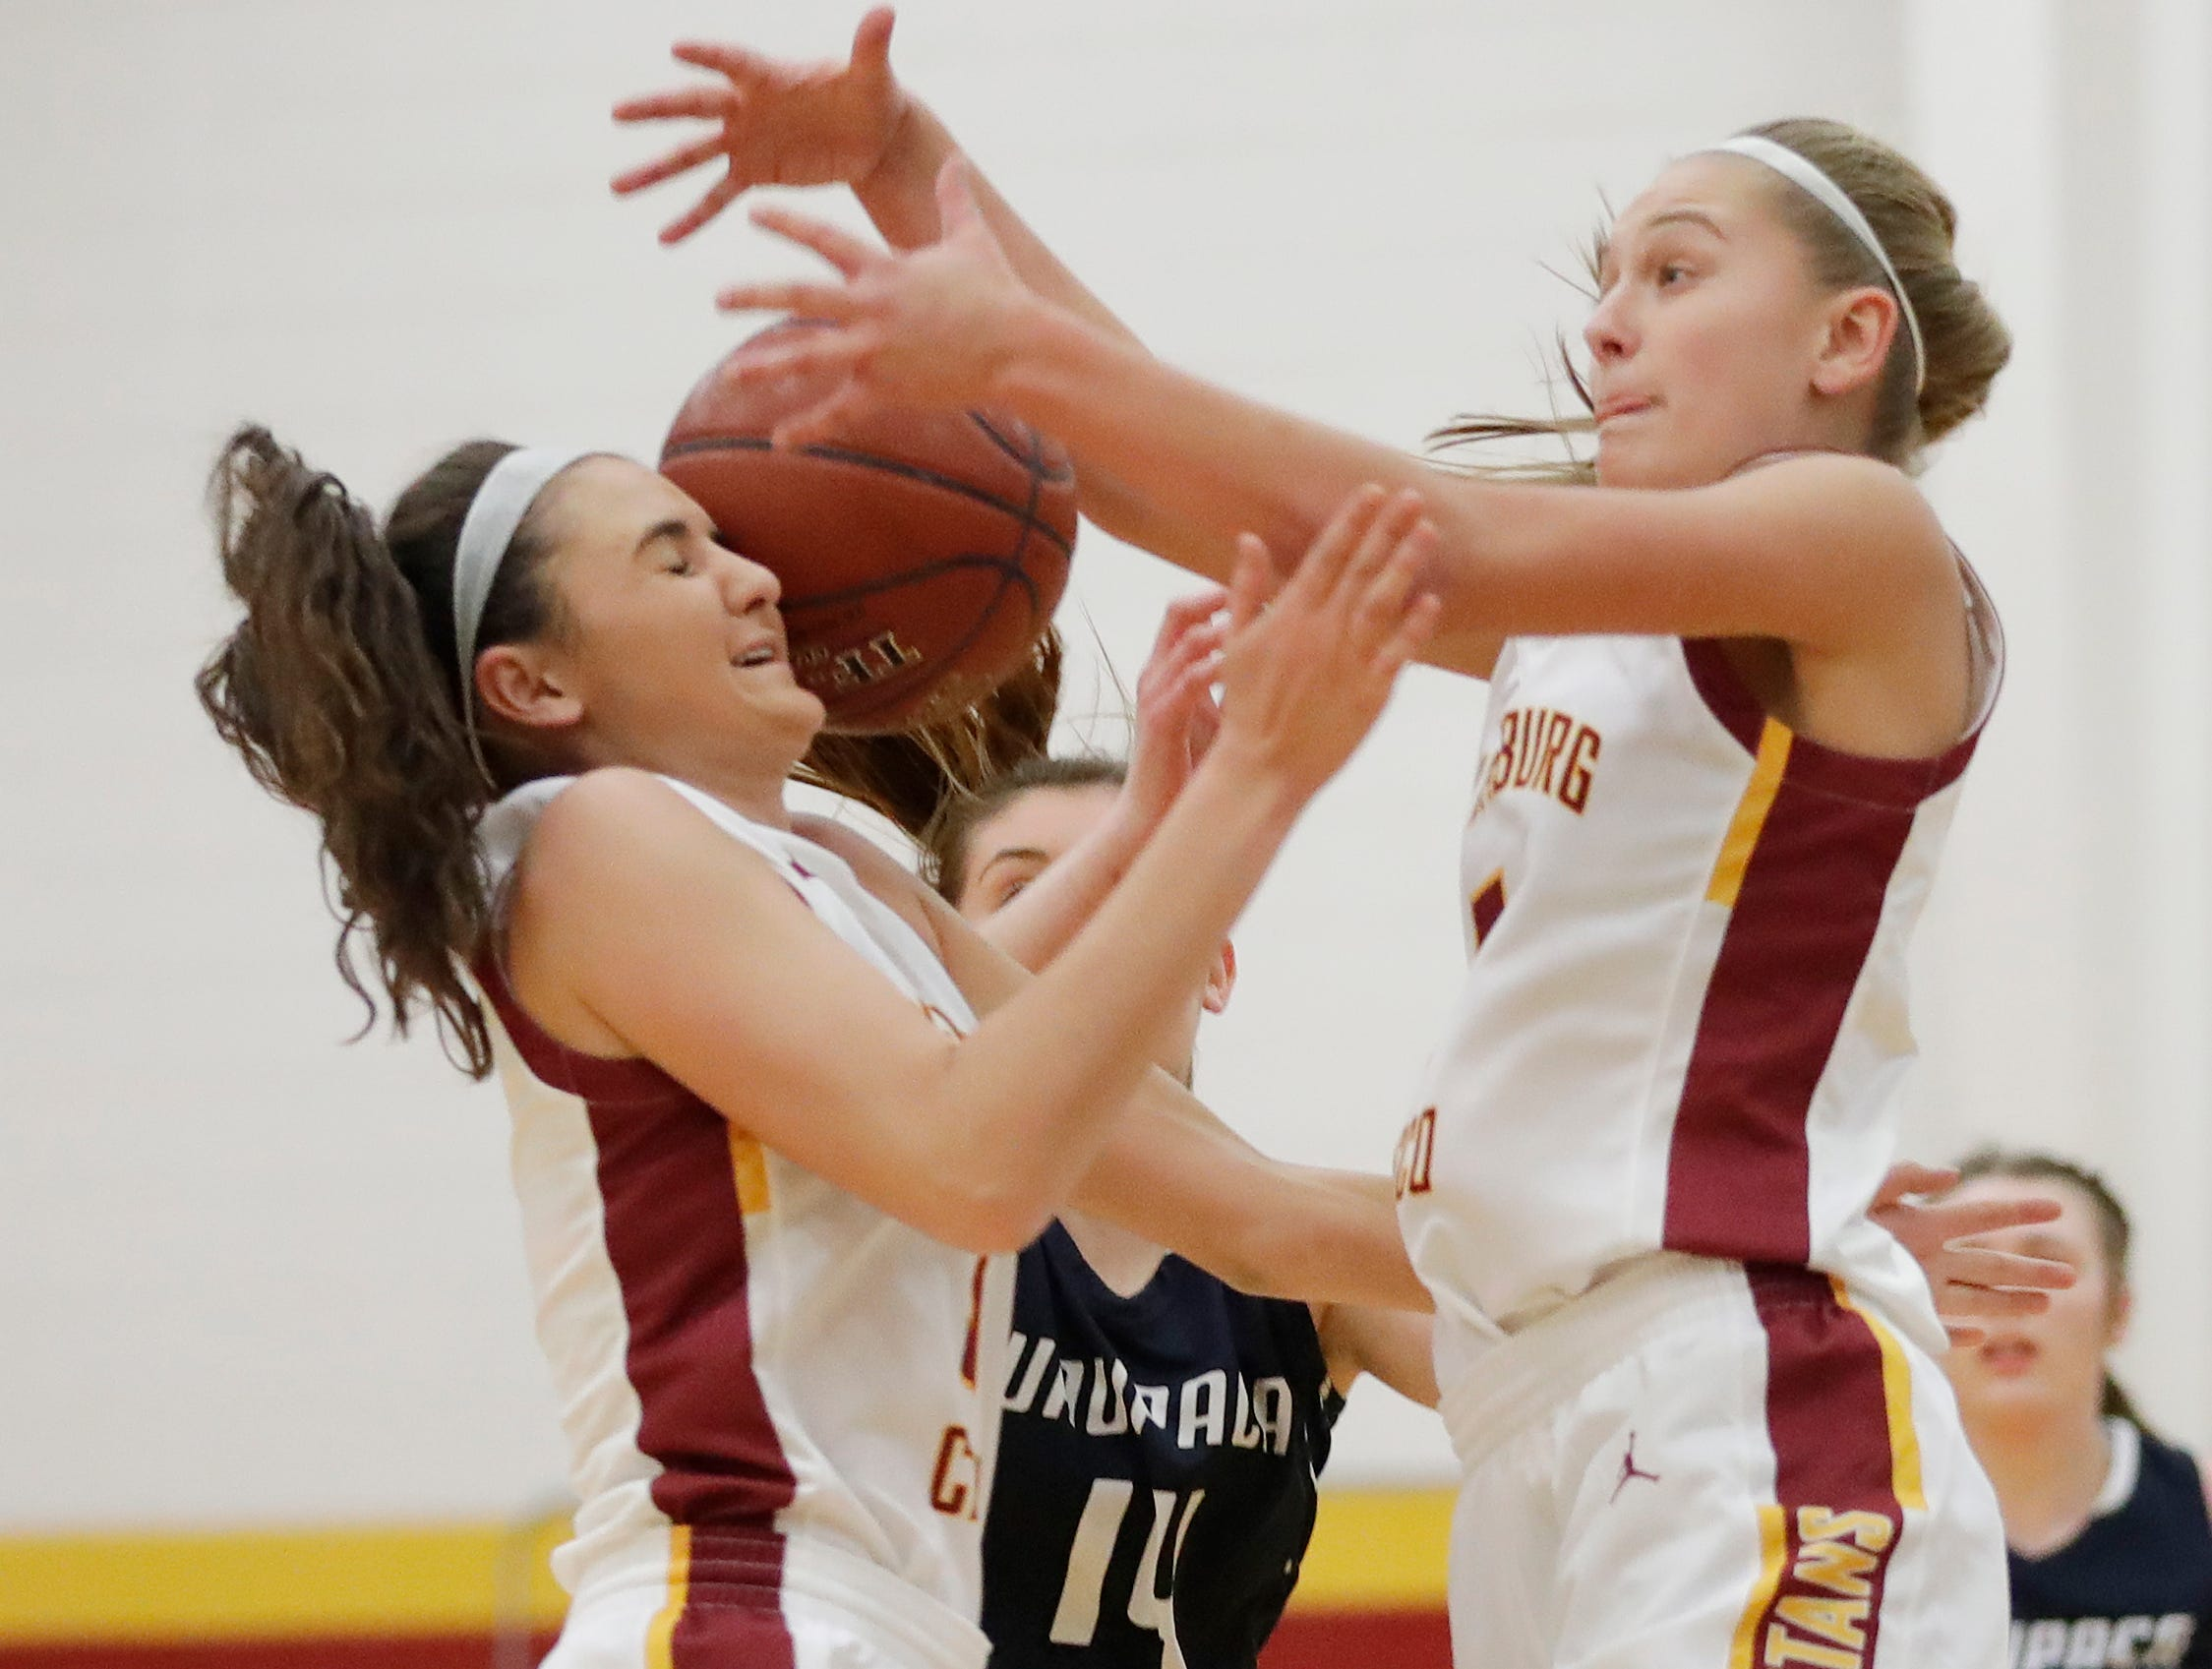 Luxemburg-Casco's Cassie Schiltz (3) and Jenna Jorgensen (5) collide while diving for a loose ball against Waupaca in a girls basketball game at Luxemburg-Casco high school on Thursday, January 10, 2019 in Luxemburg, Wis.